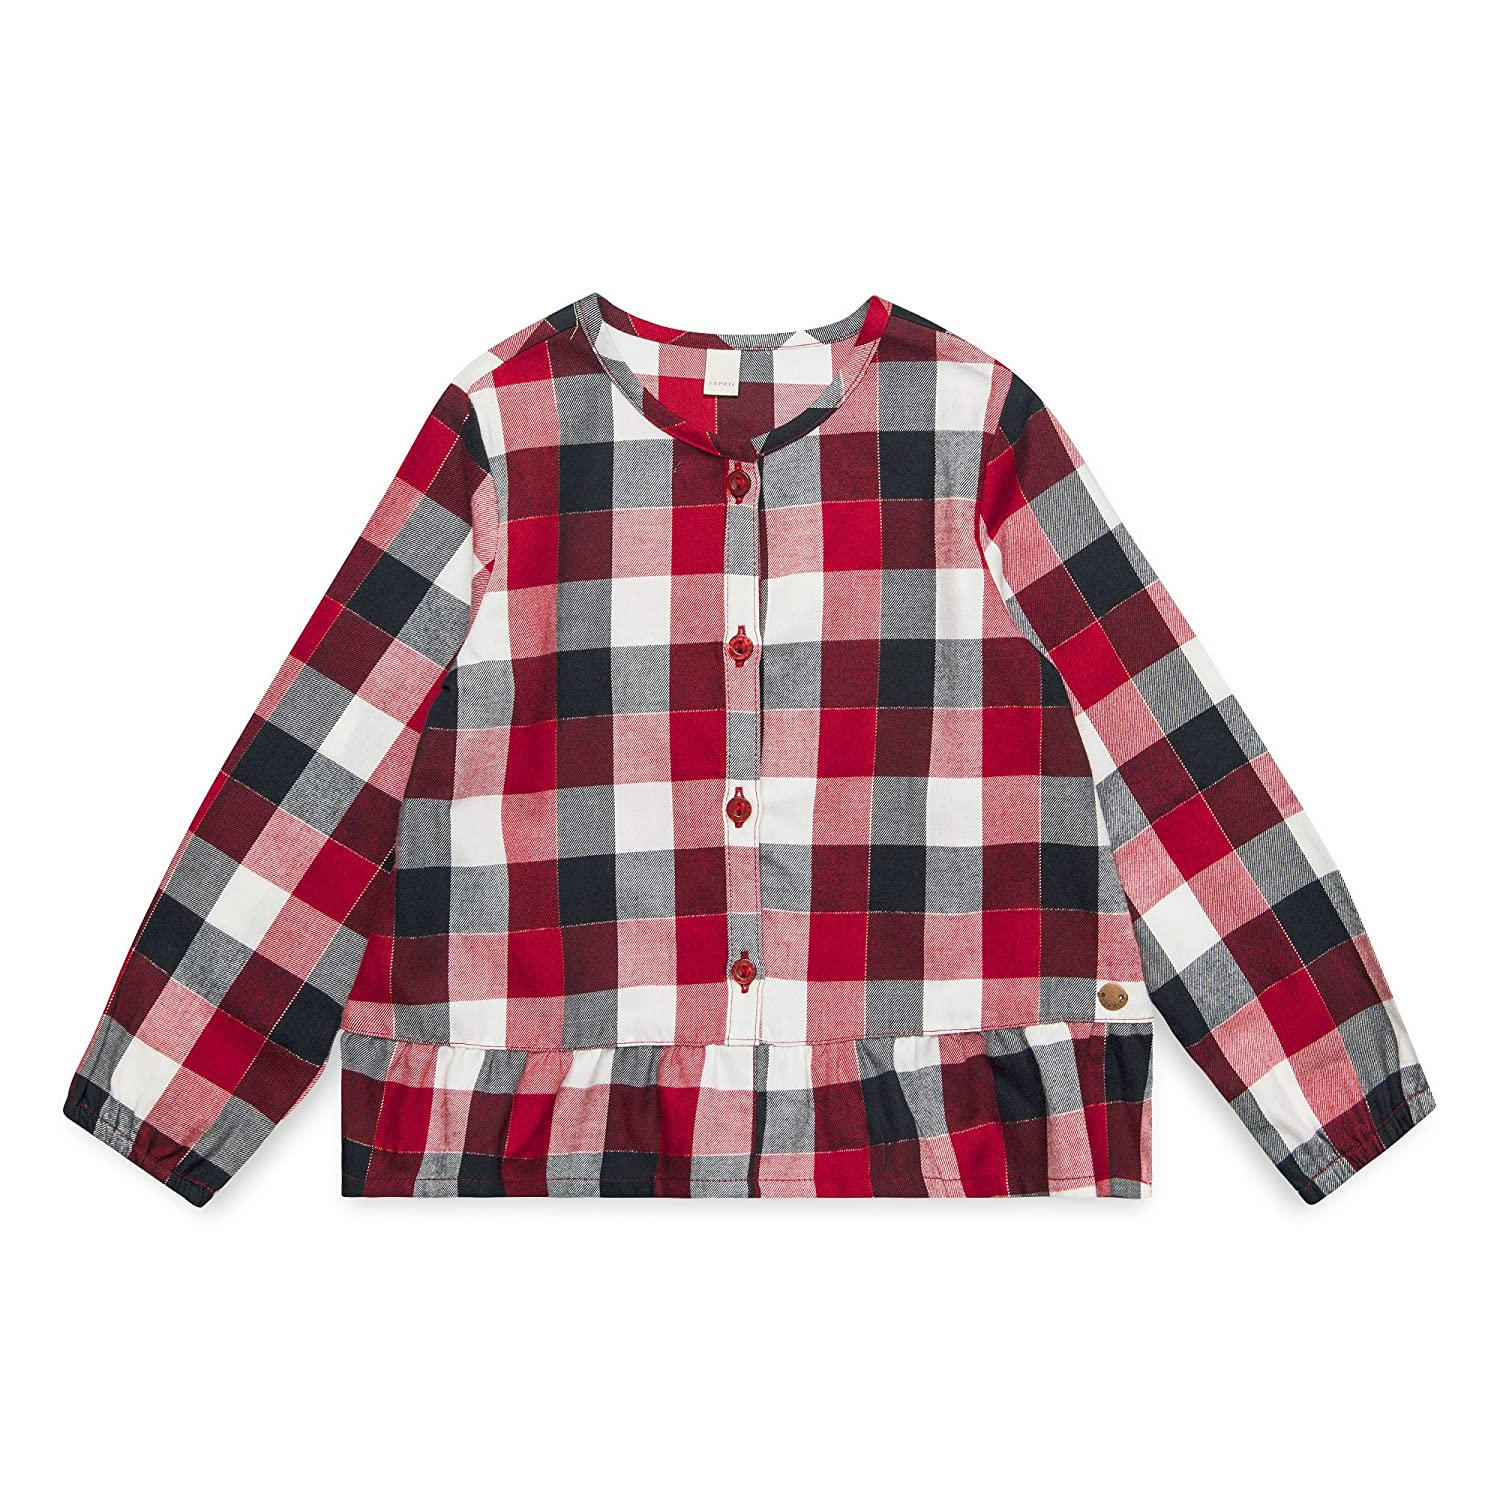 ESPRIT Kids Bluse for Girl, Camicia Bambina